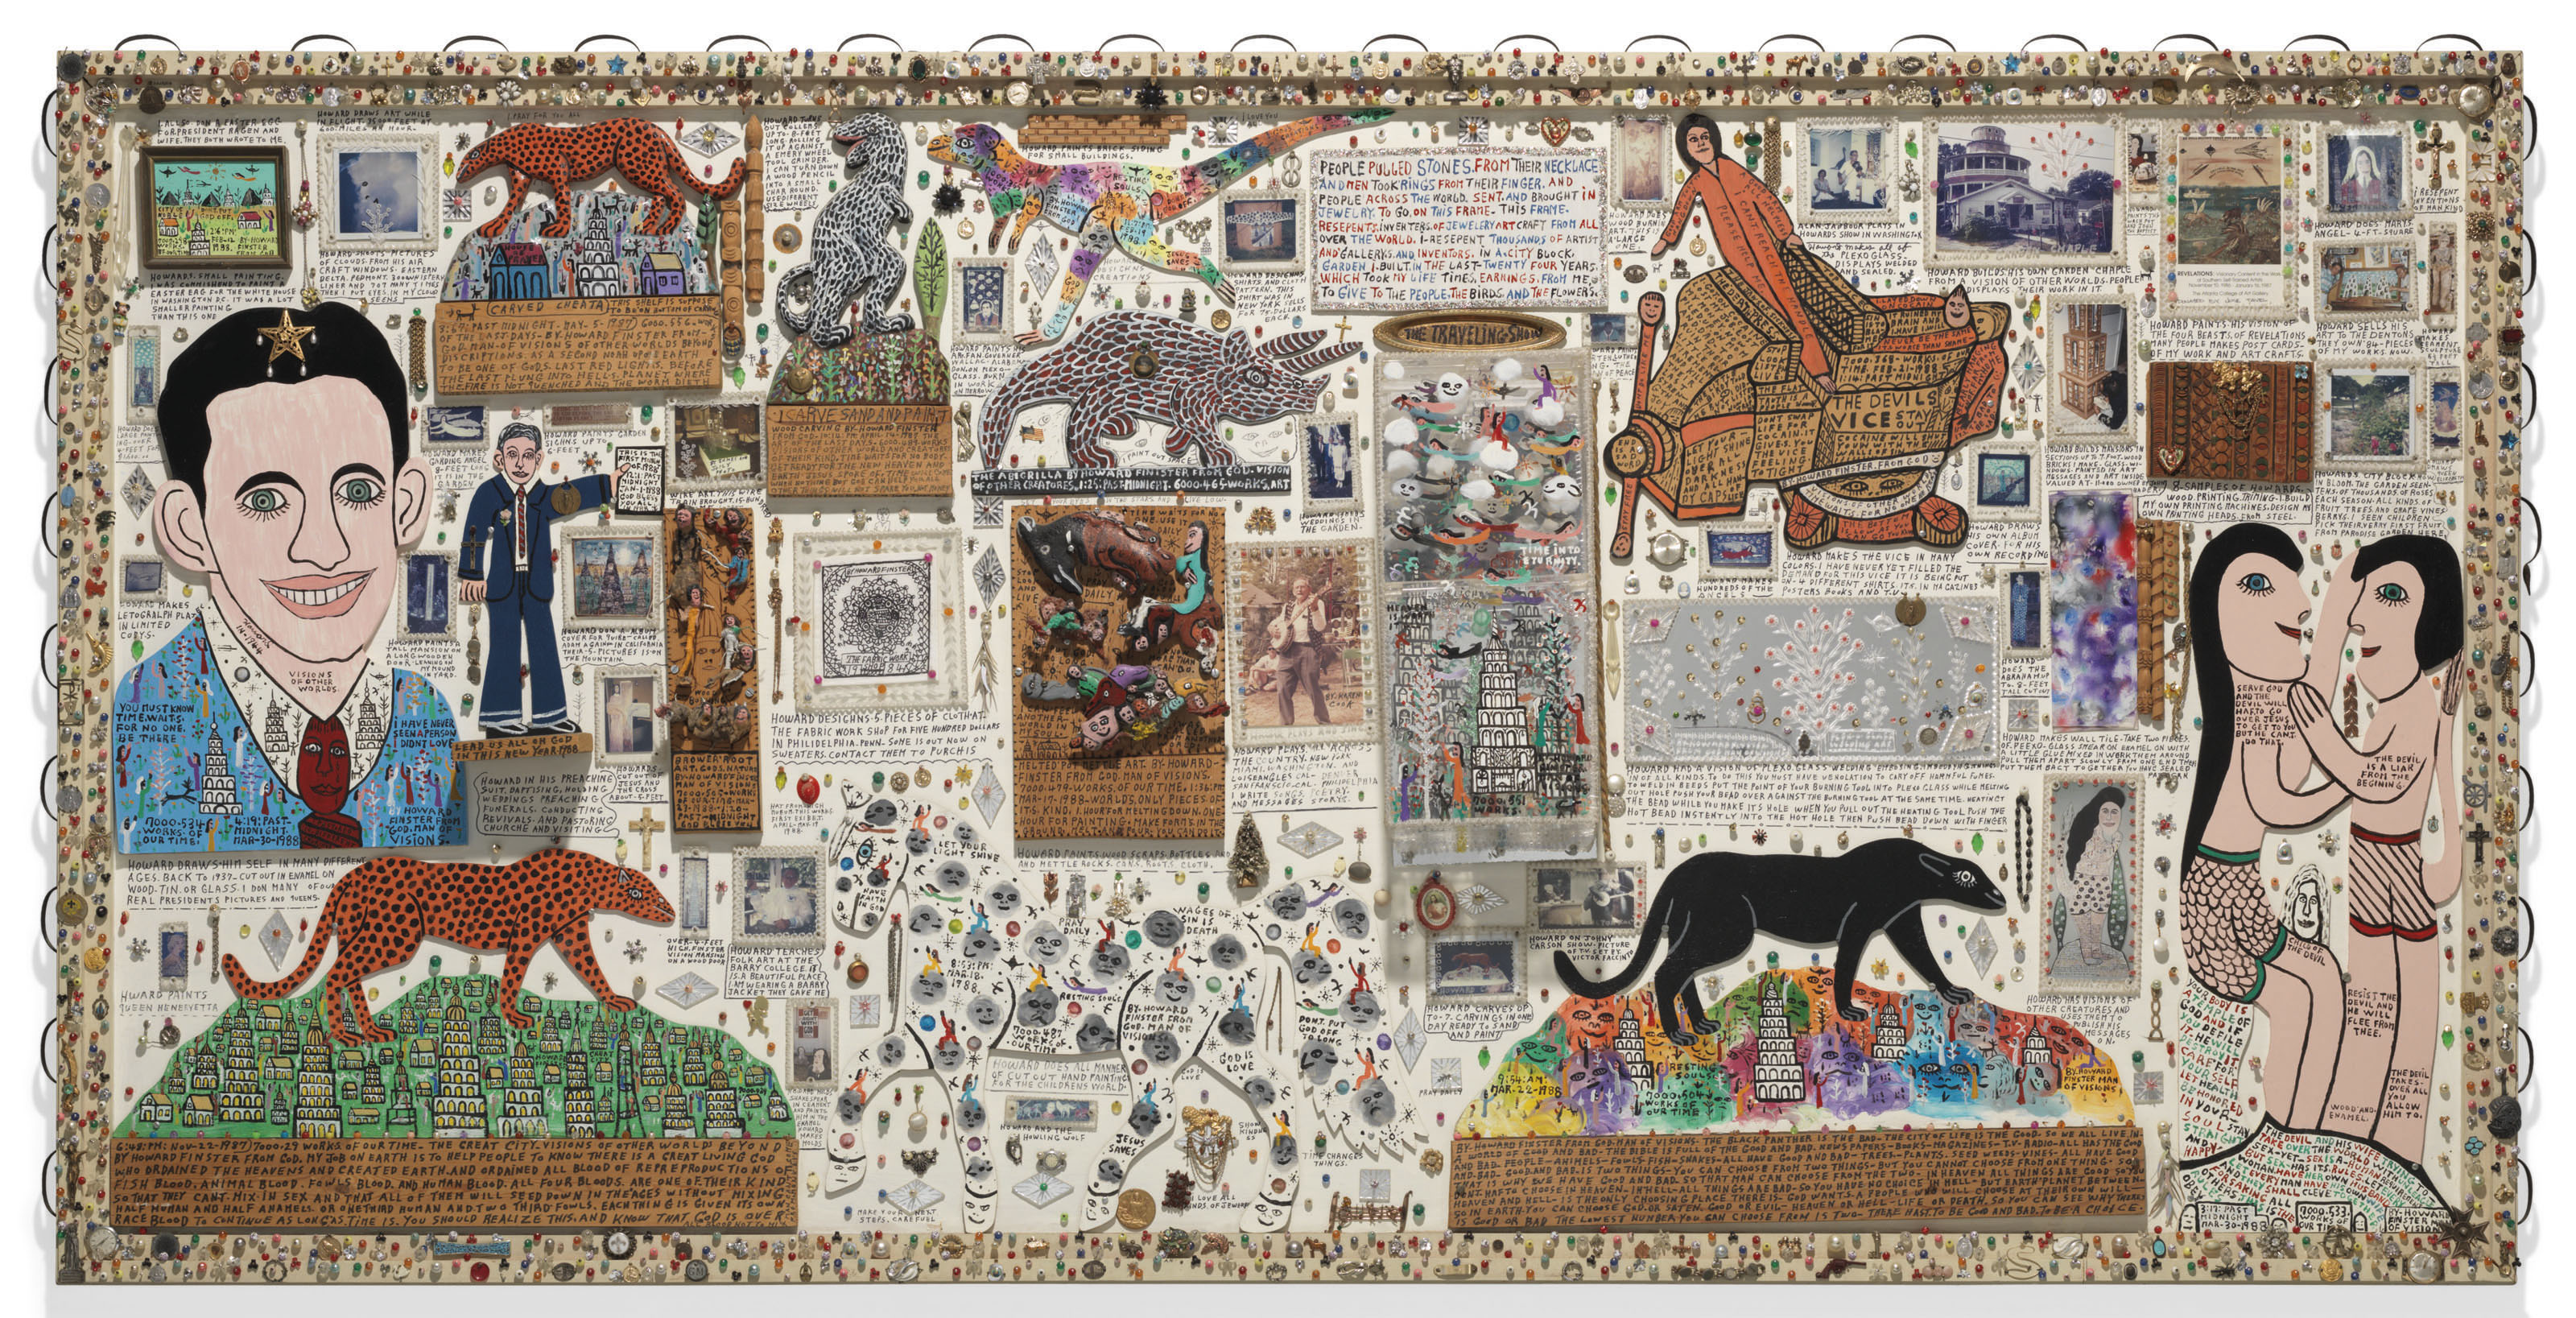 Traveling Show: Presentation Piece Detailing the Life of Howard Finster, 1988